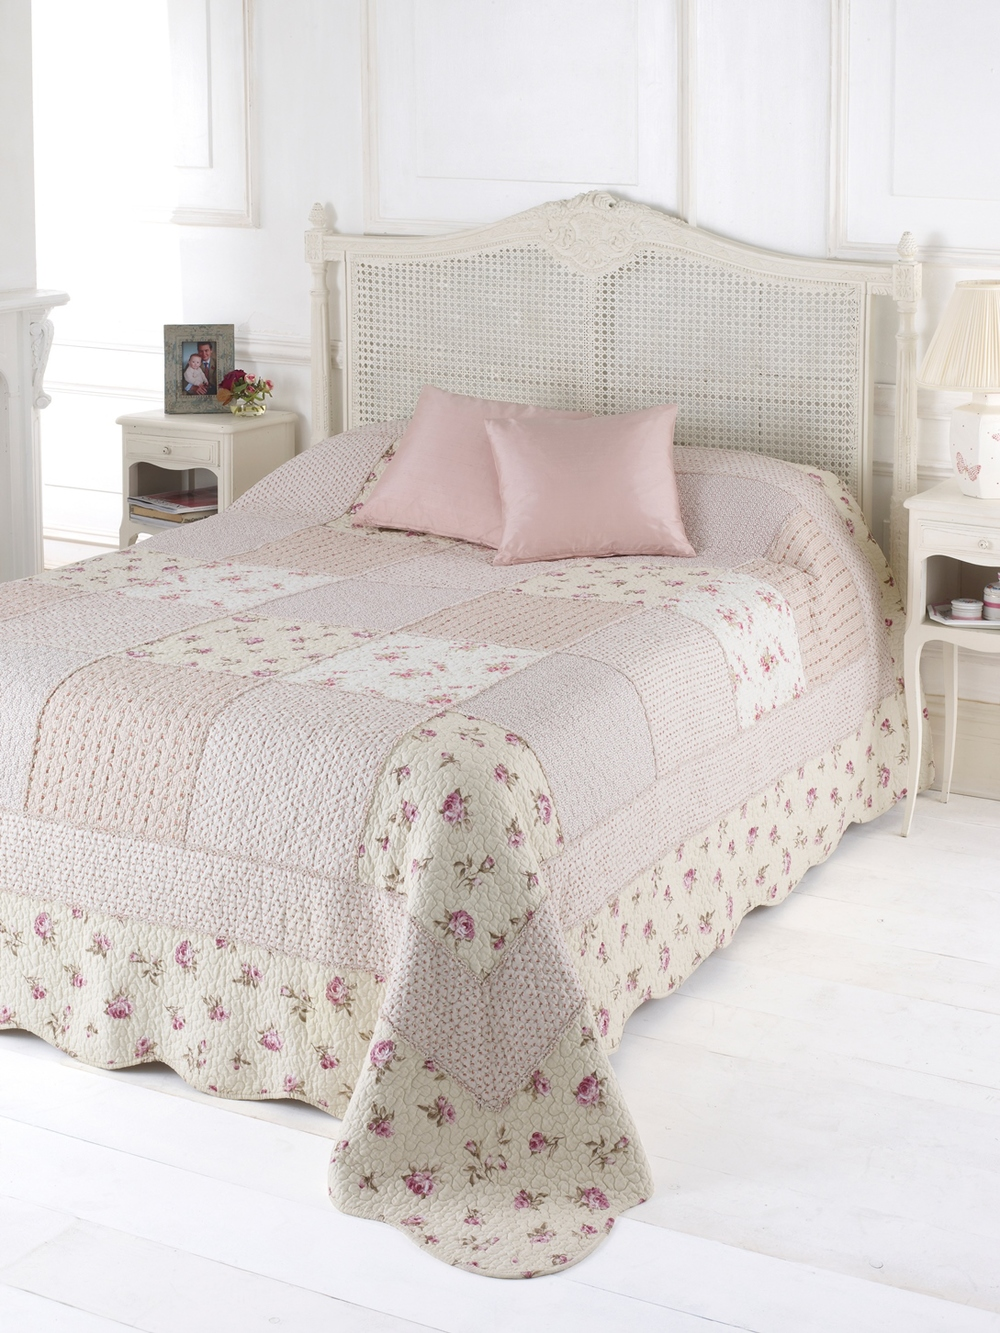 Molly Quilt Lifestyleresized.jpg